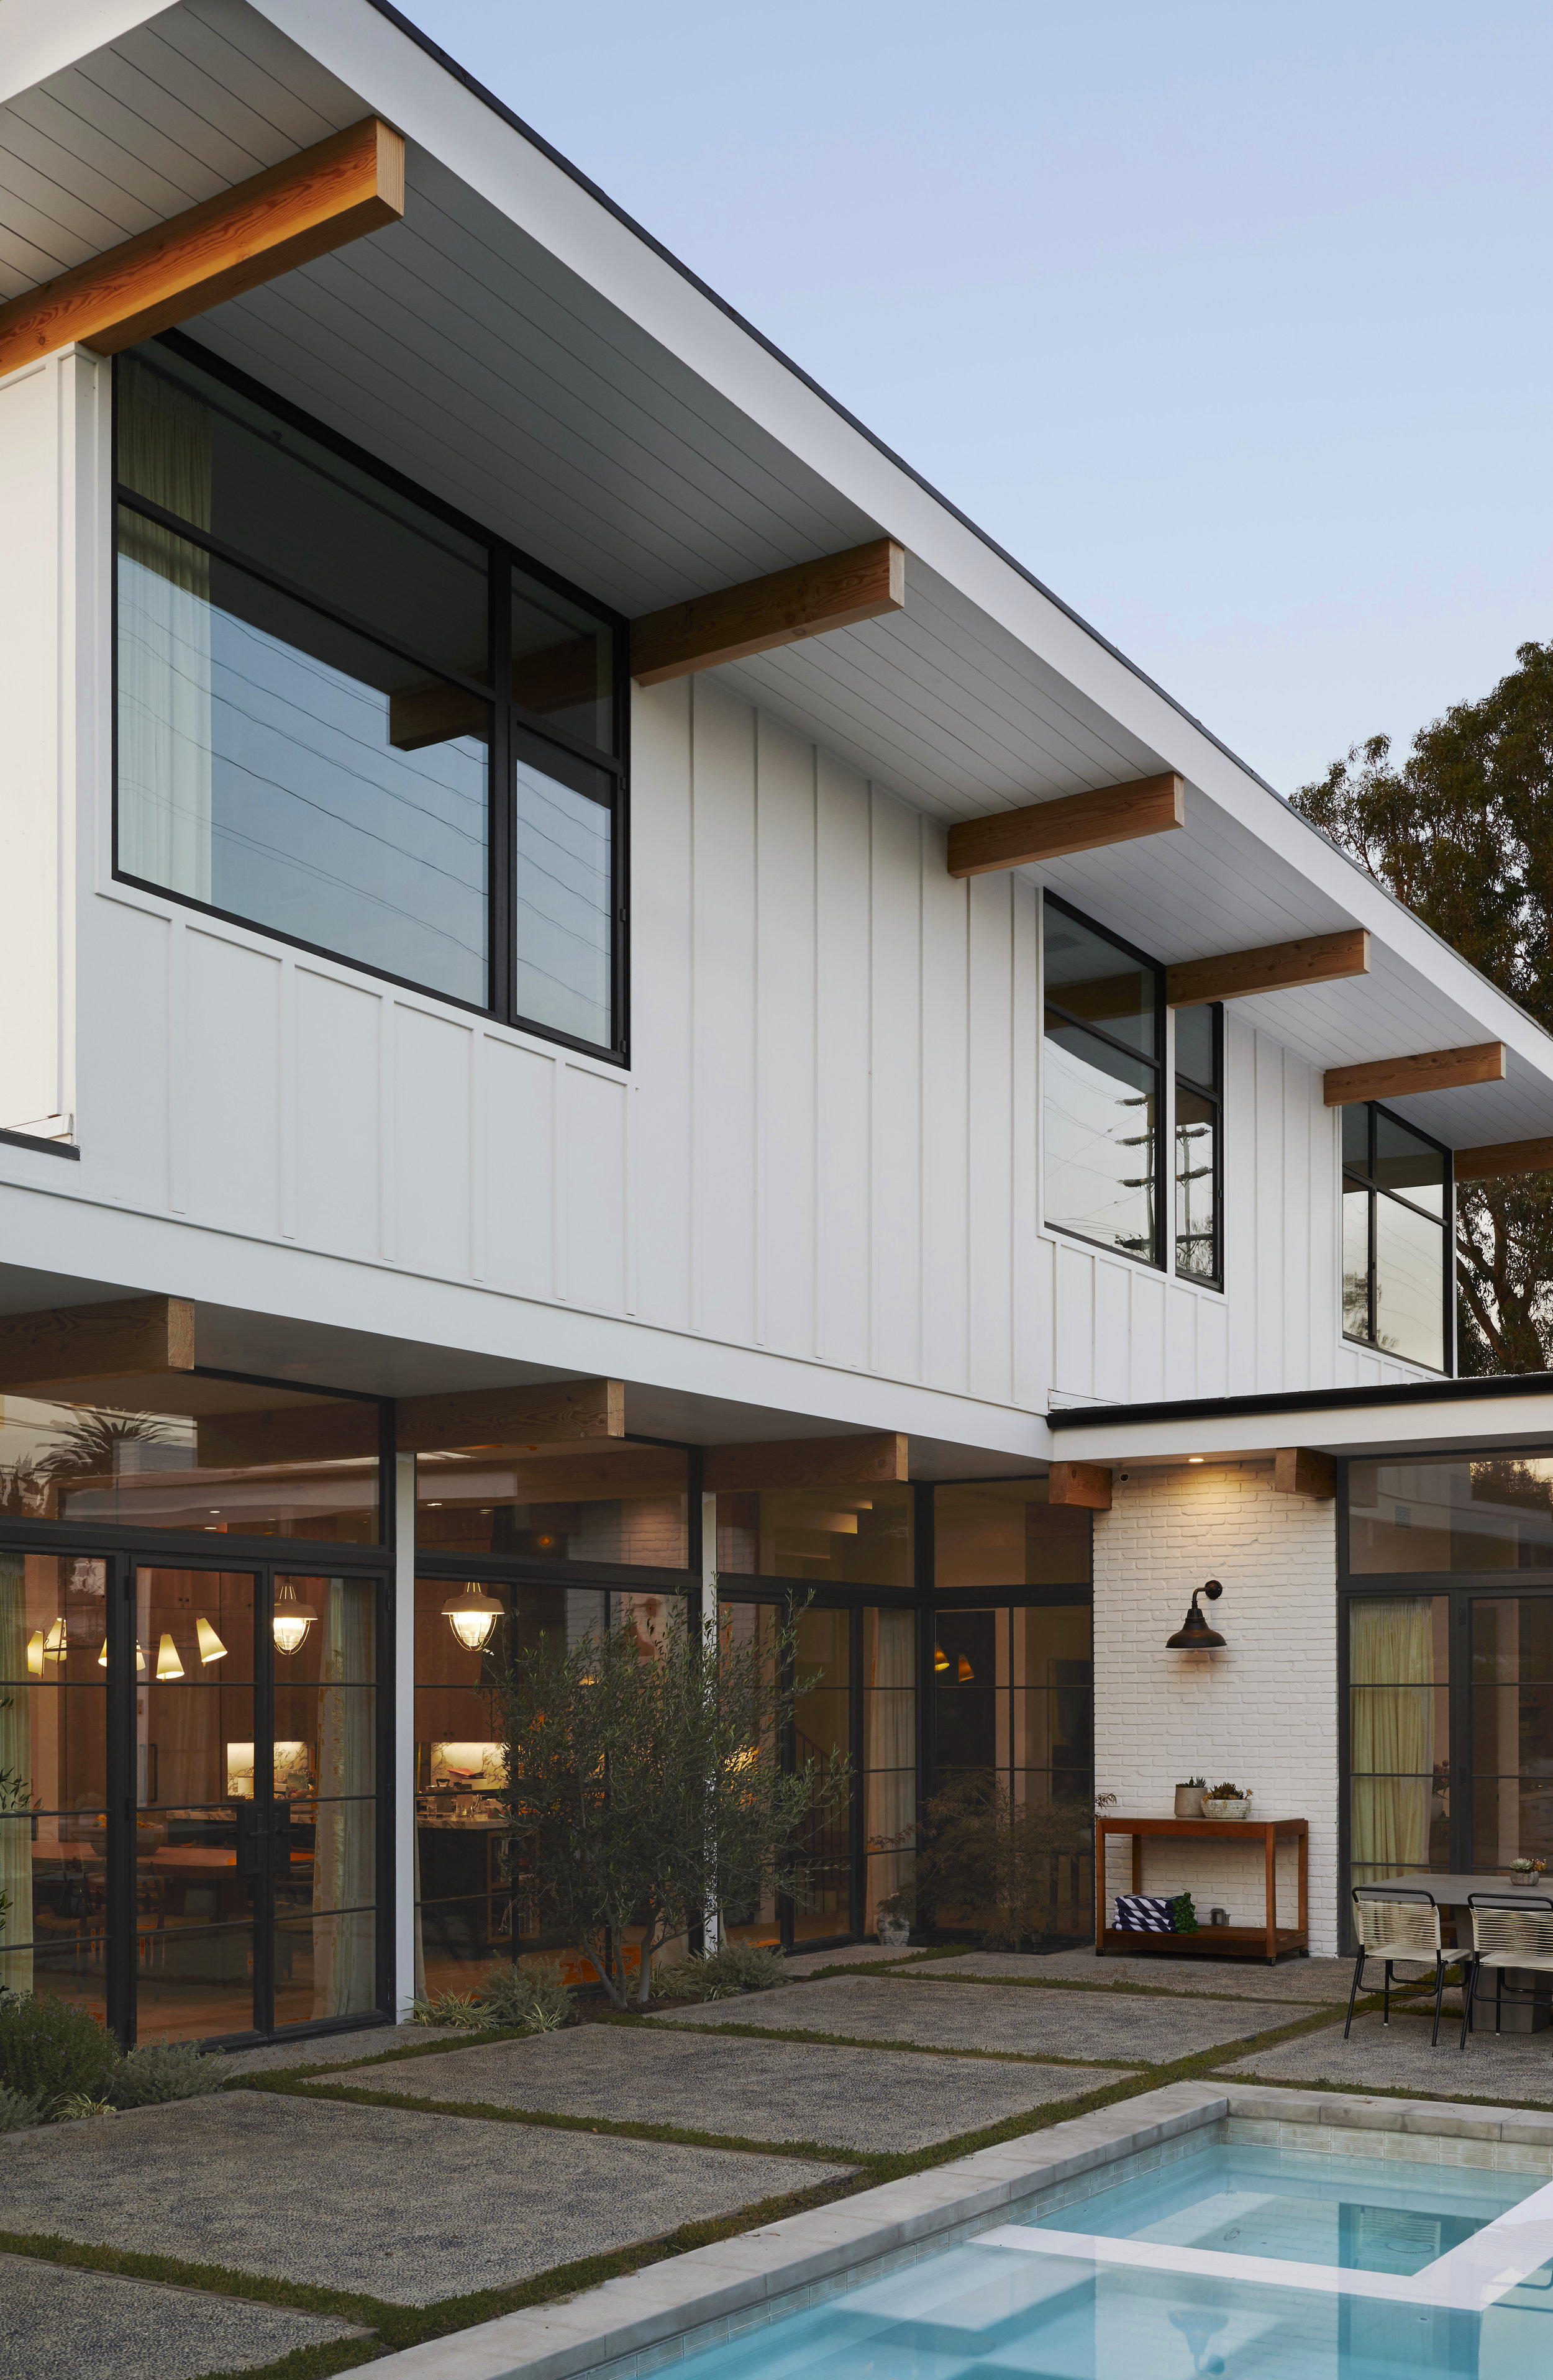 scout_and_nimble_california_home36.jpg